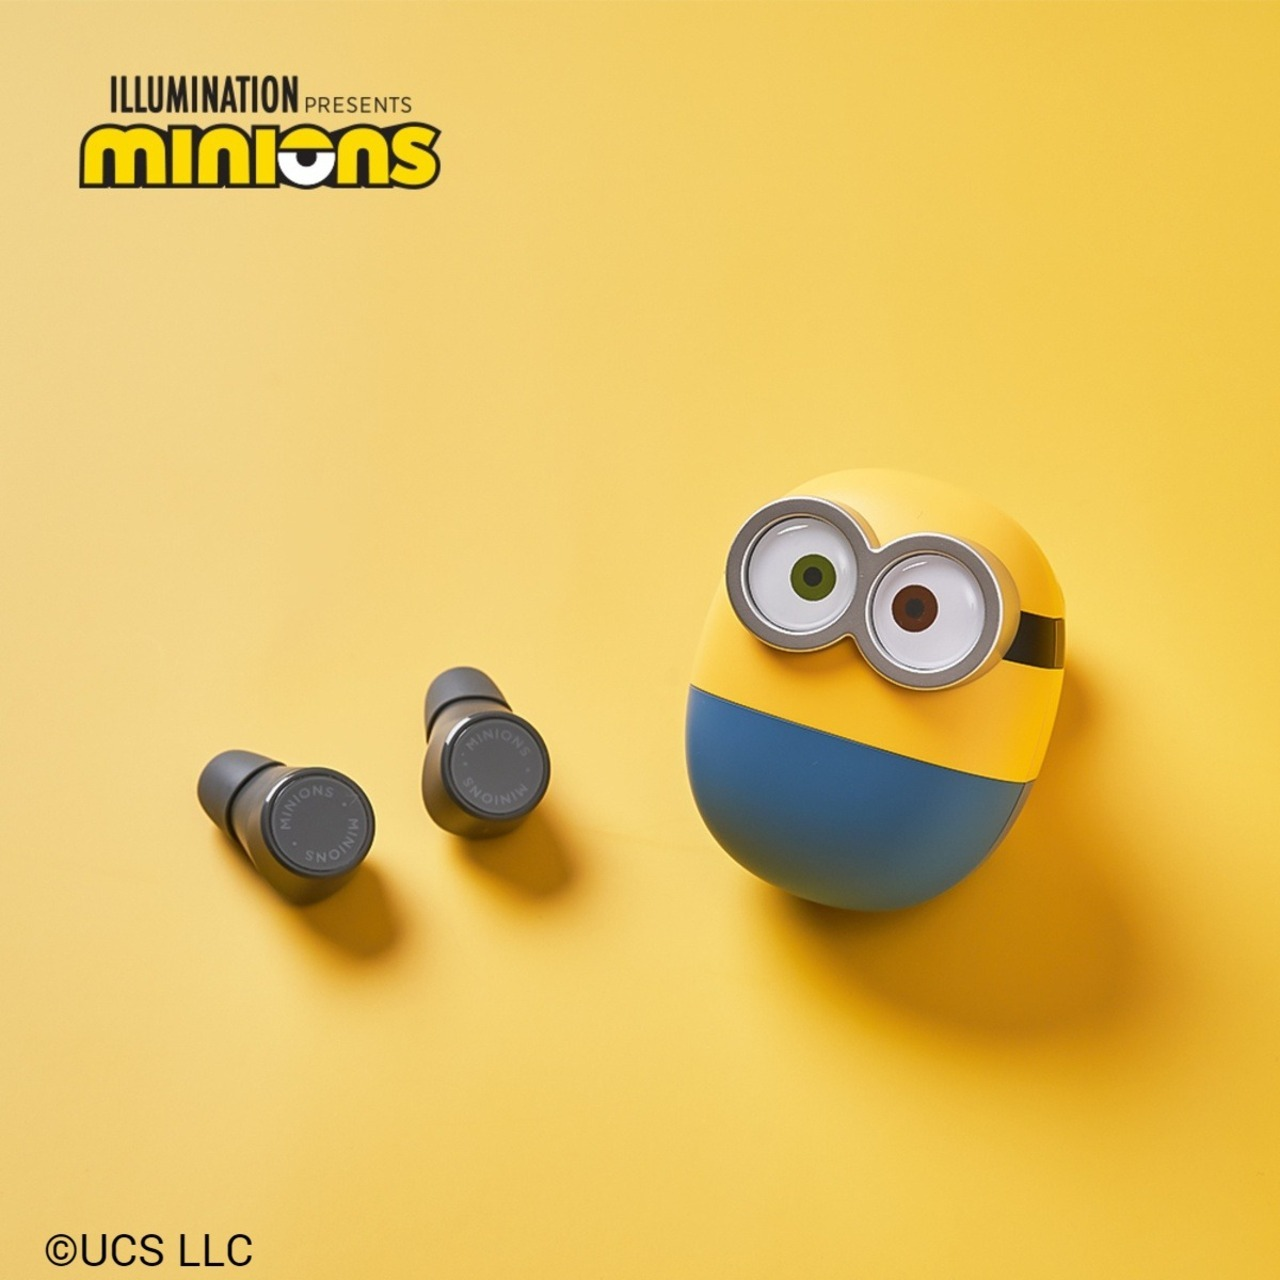 IRIVER MINIONS WIRELESS EARBUDS